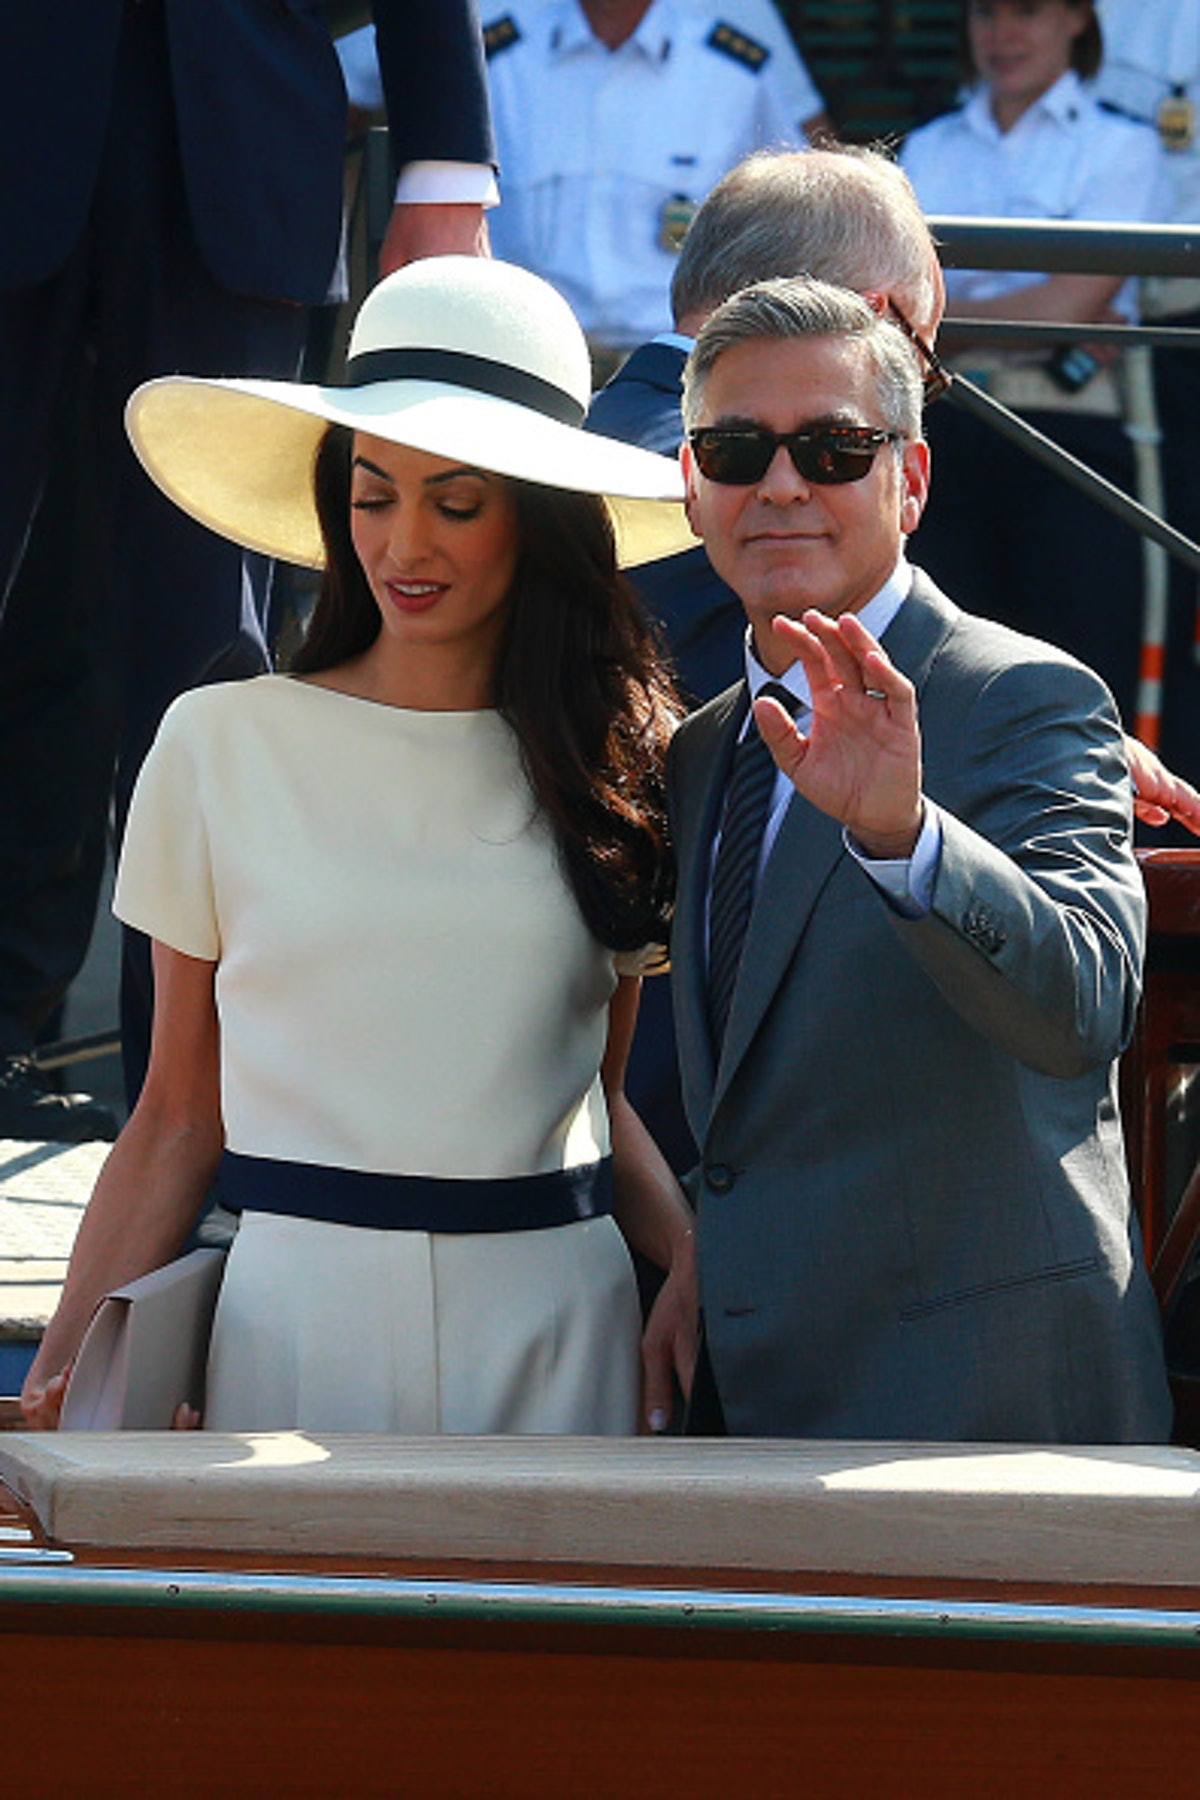 George and Amal on a Venetian water taxi